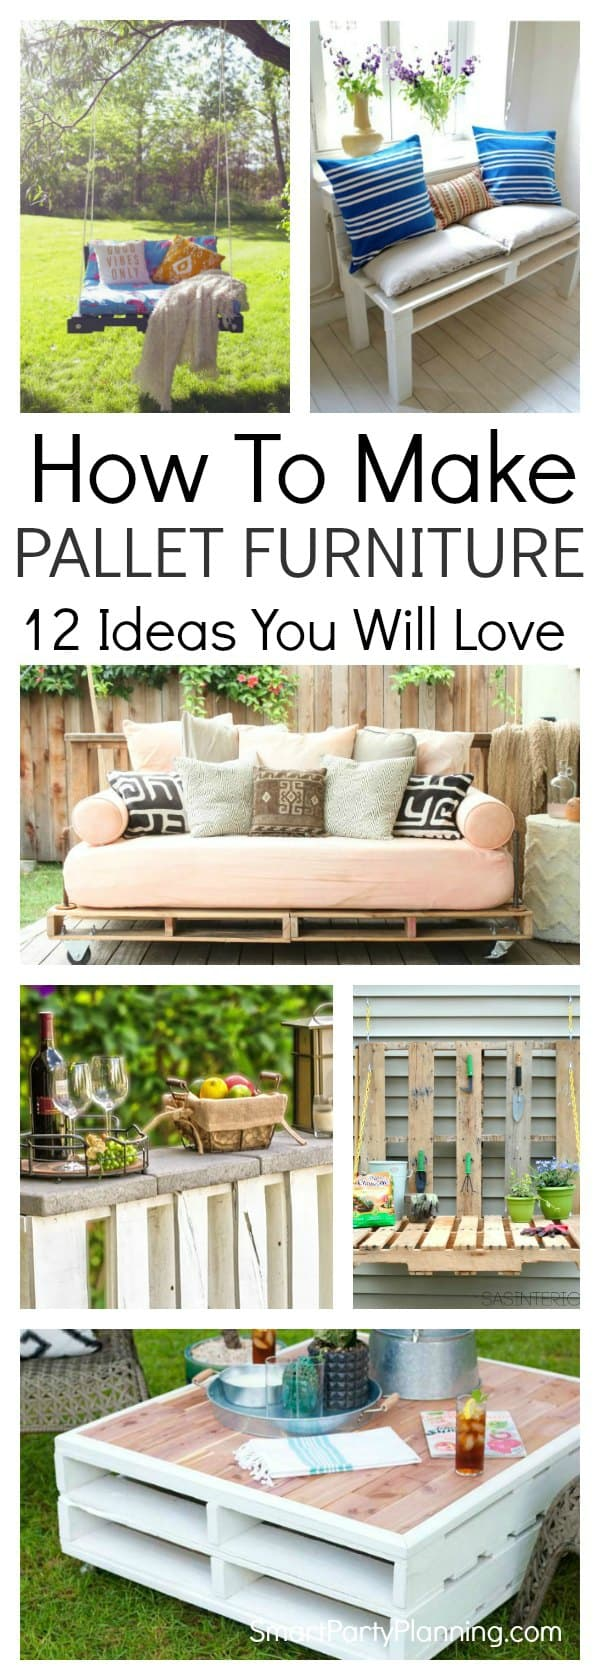 Collage of how to make pallet furniture